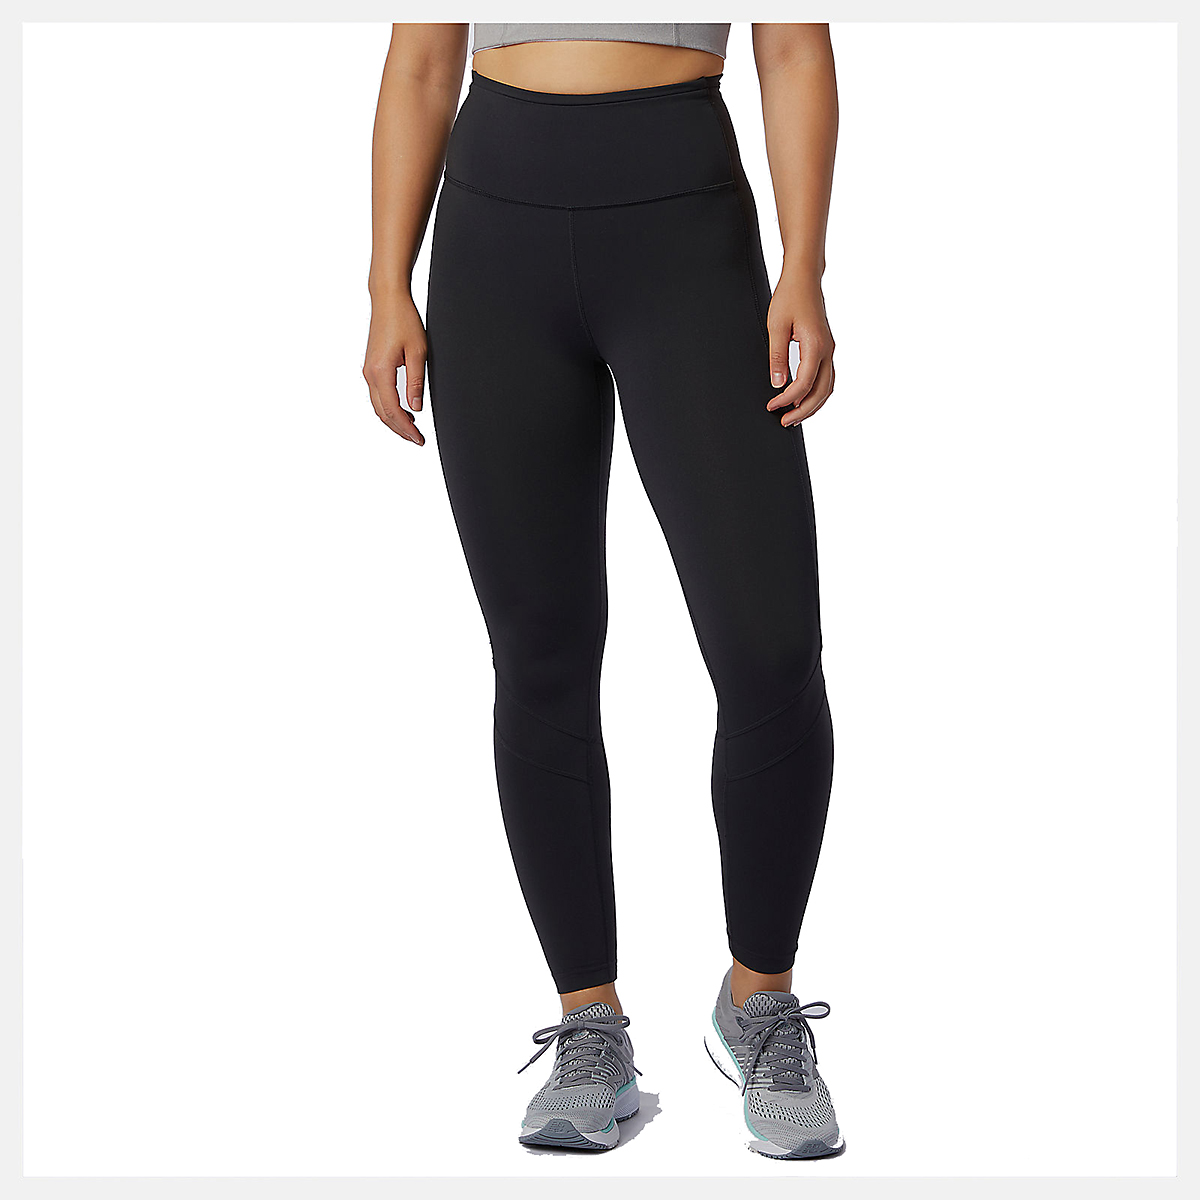 Women's New Balance Transform High Rise 7/8 Pocket Tight, , large, image 1